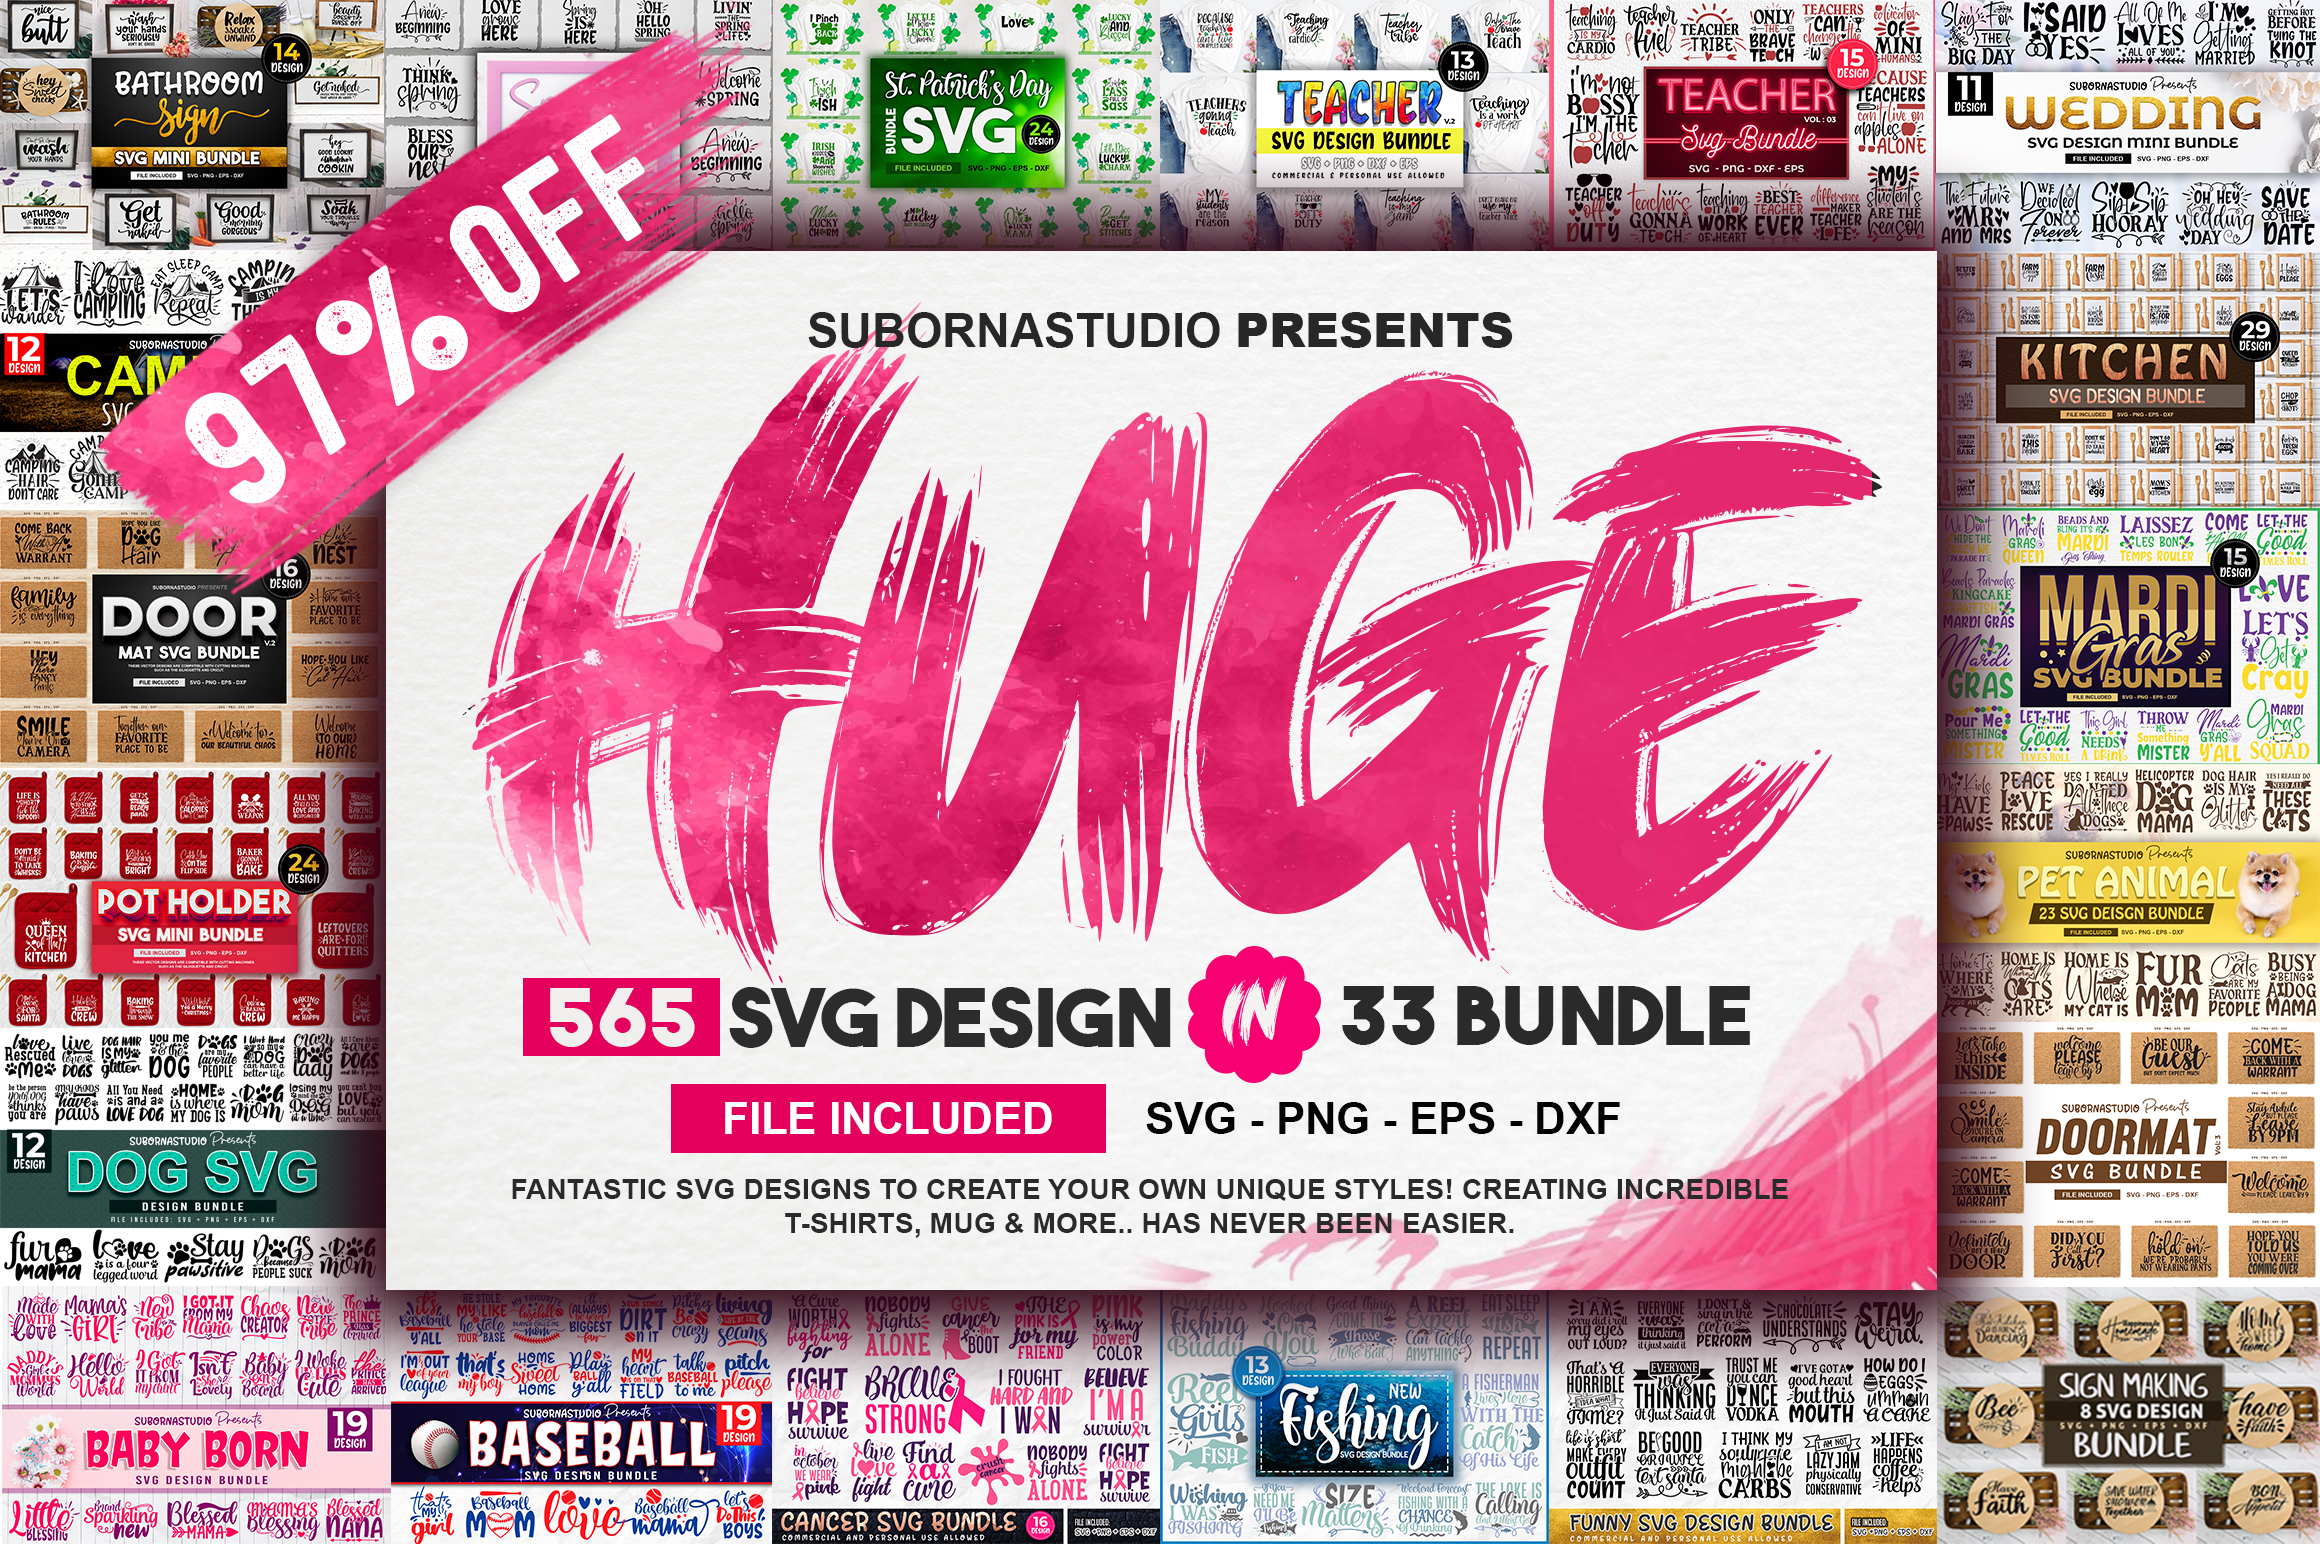 Download Free 565 Design The Huge 33 Bundles Graphic By Subornastudio for Cricut Explore, Silhouette and other cutting machines.